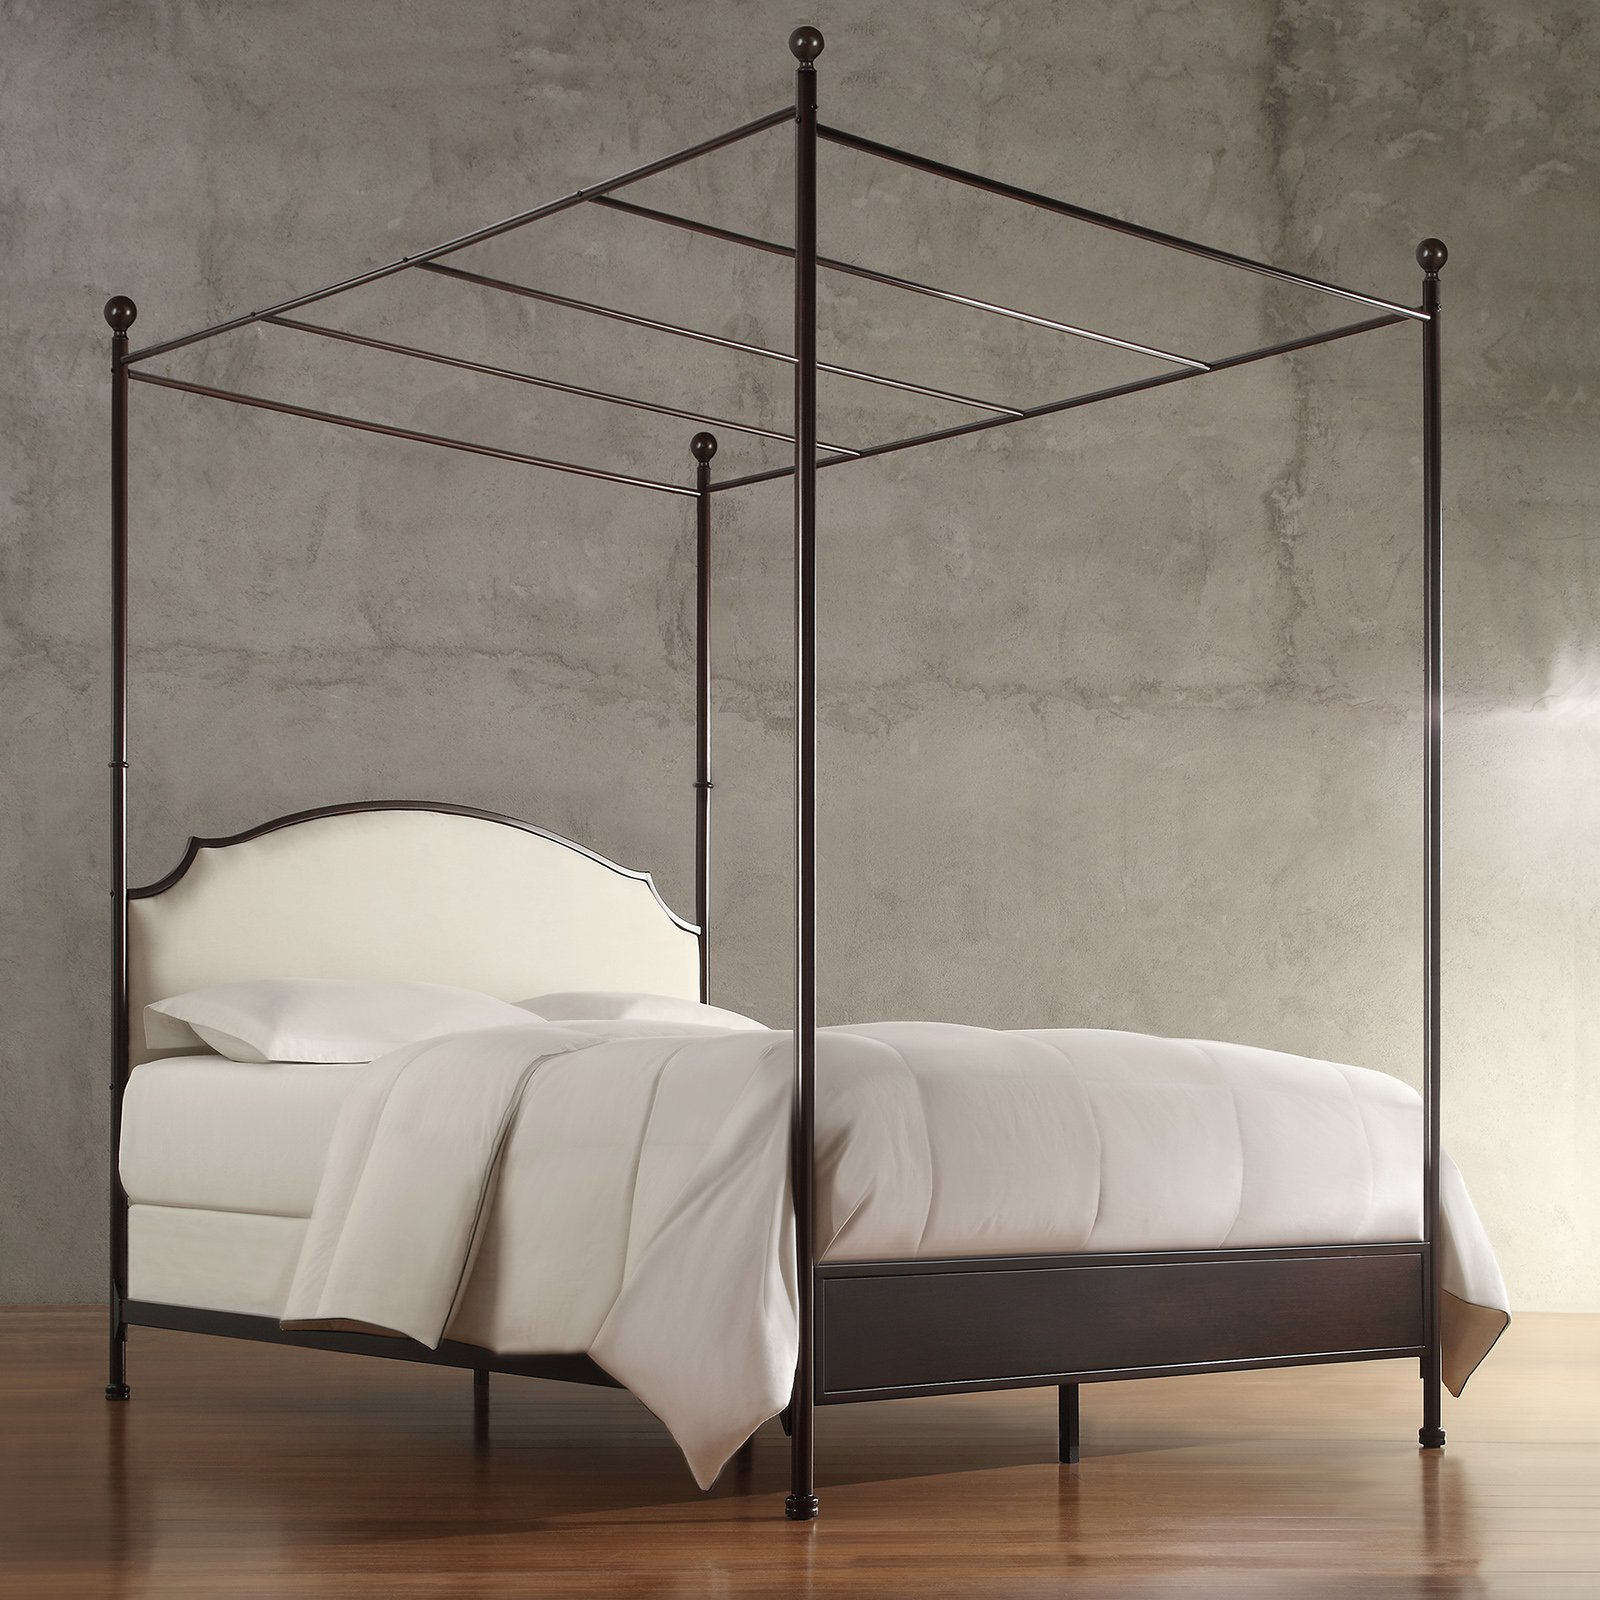 Weston Home Swindon Upholstered Metal Canopy Bed